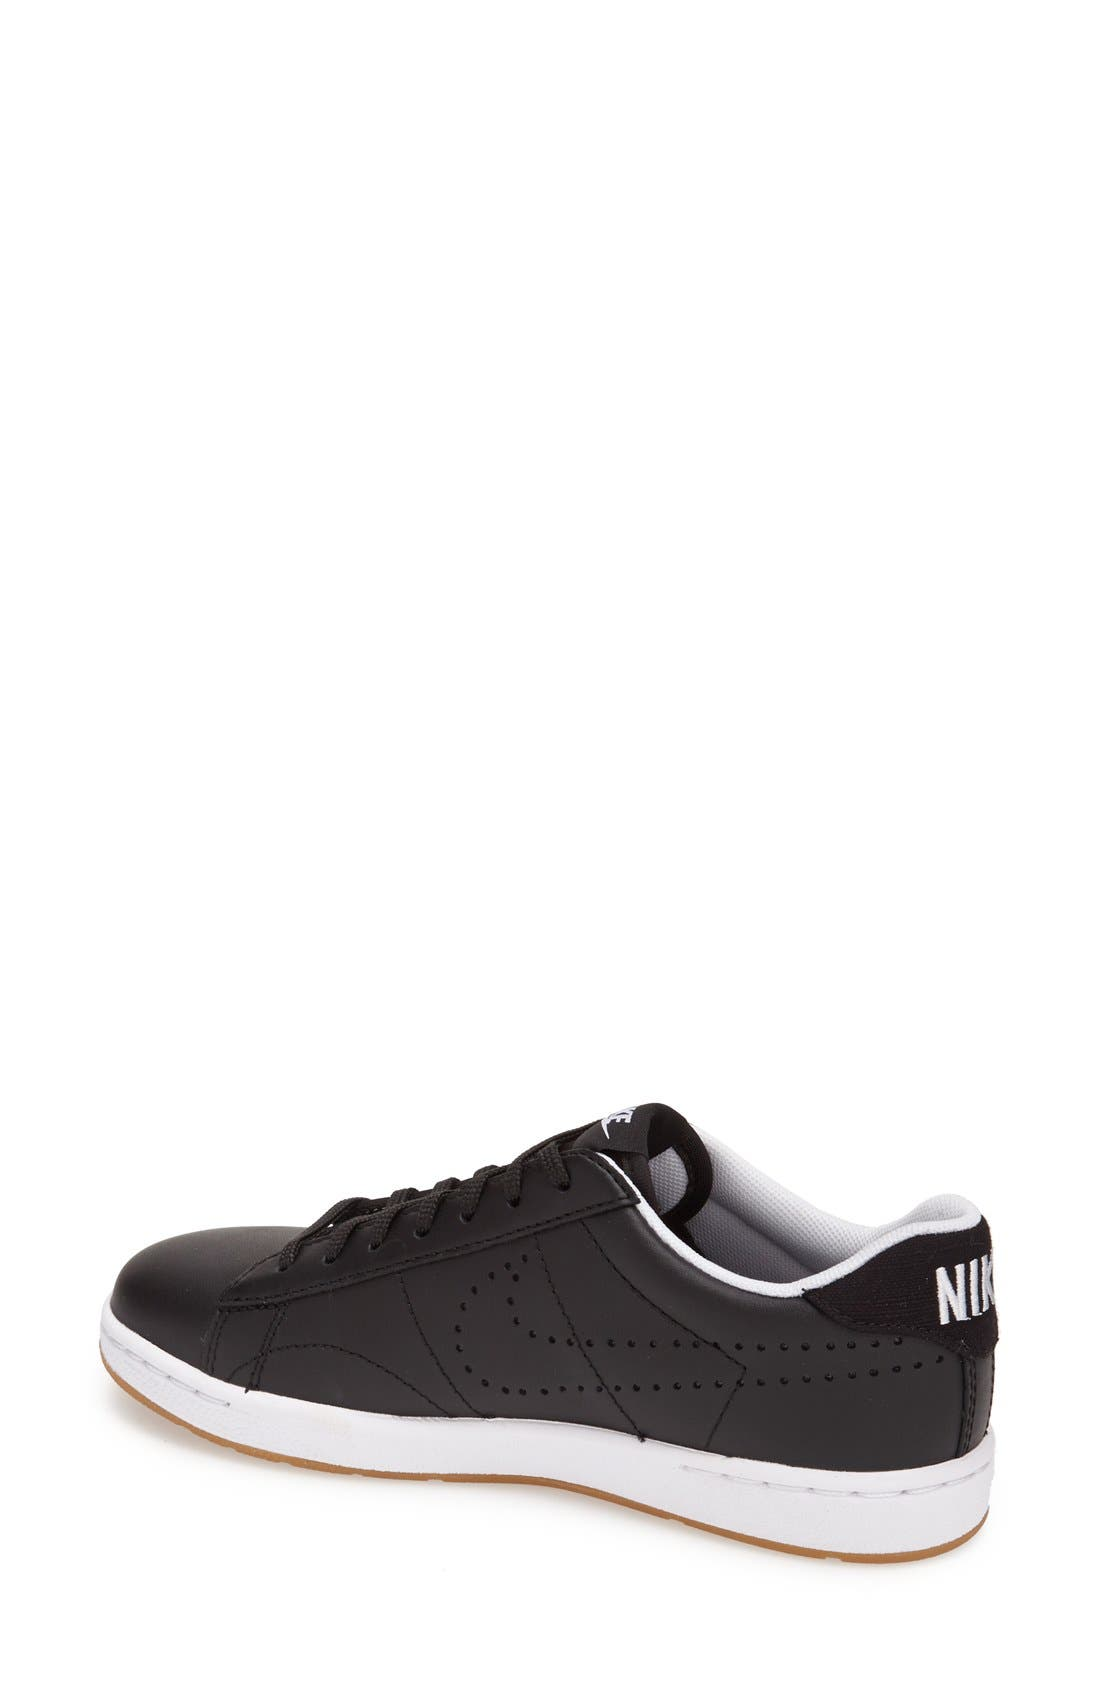 Alternate Image 2  - Nike 'Classic Ultra' Leather Sneaker (Women)